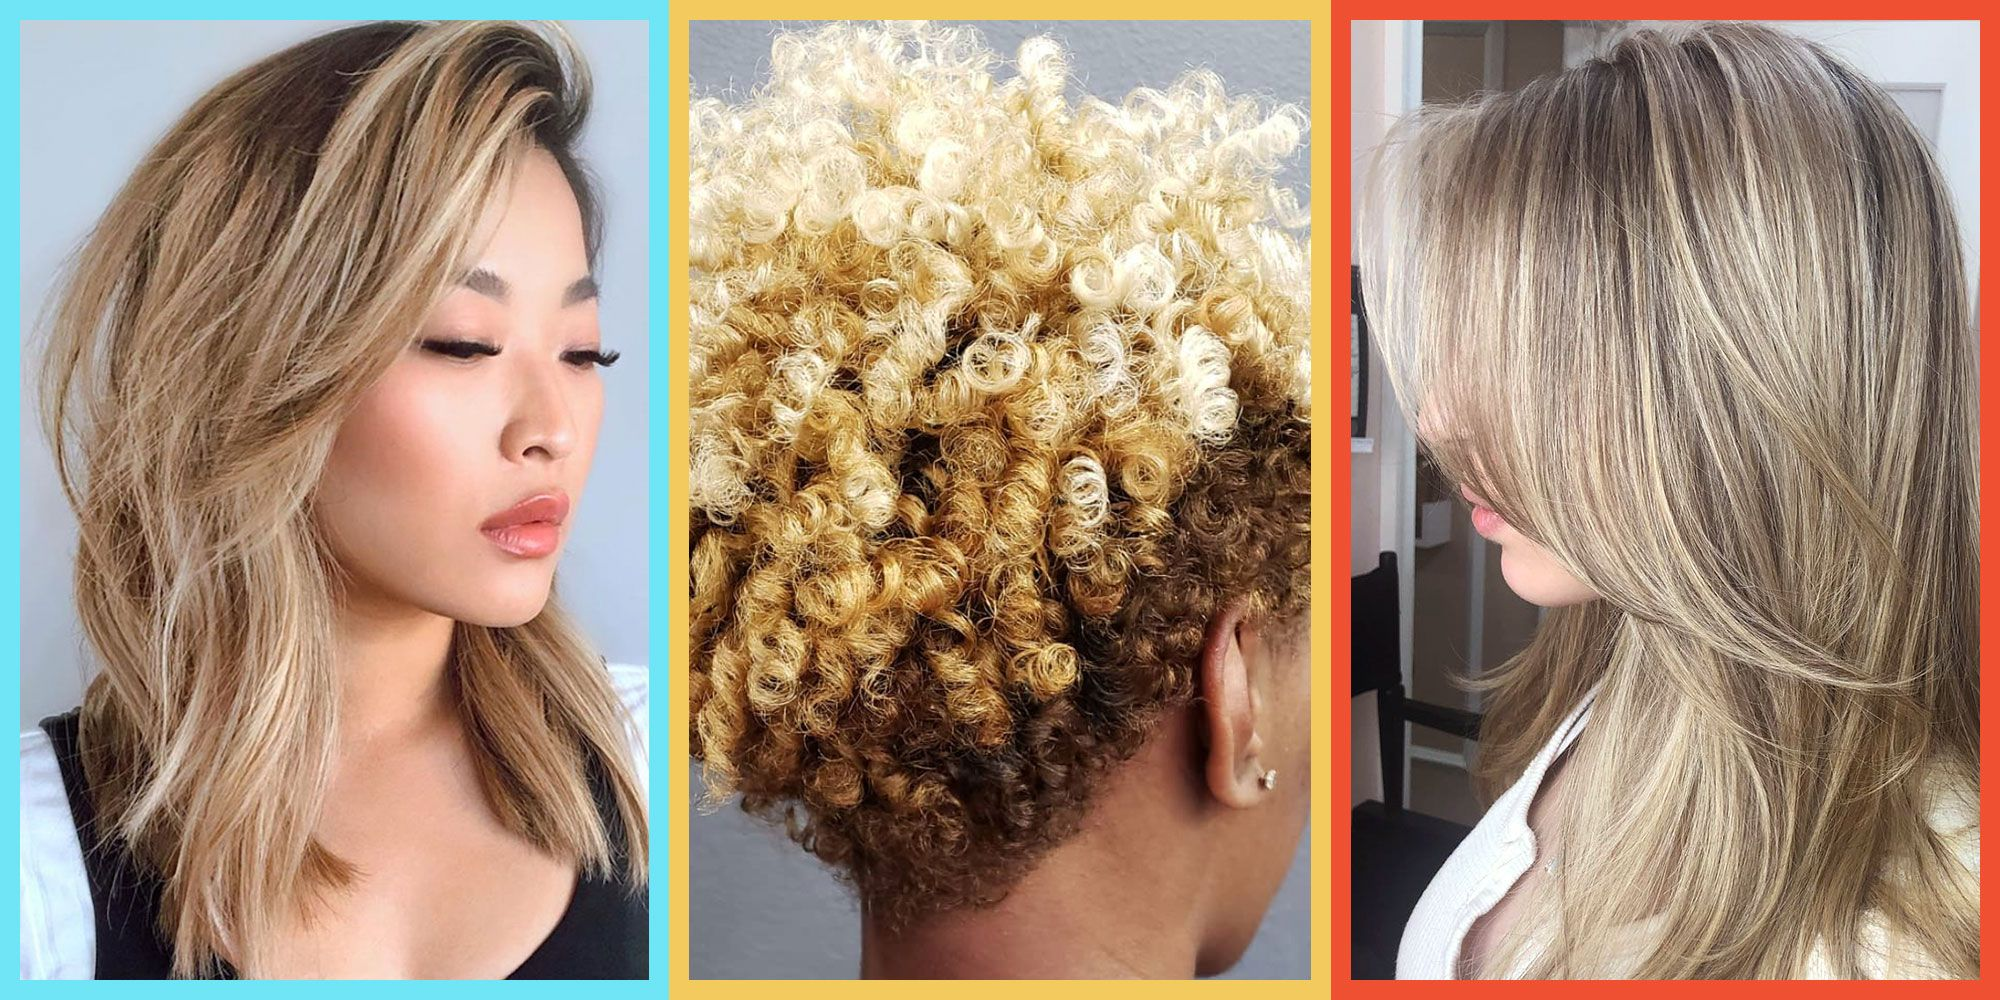 20 Best Layered Hairstyles and Shaggy Haircut Ideas of 2019